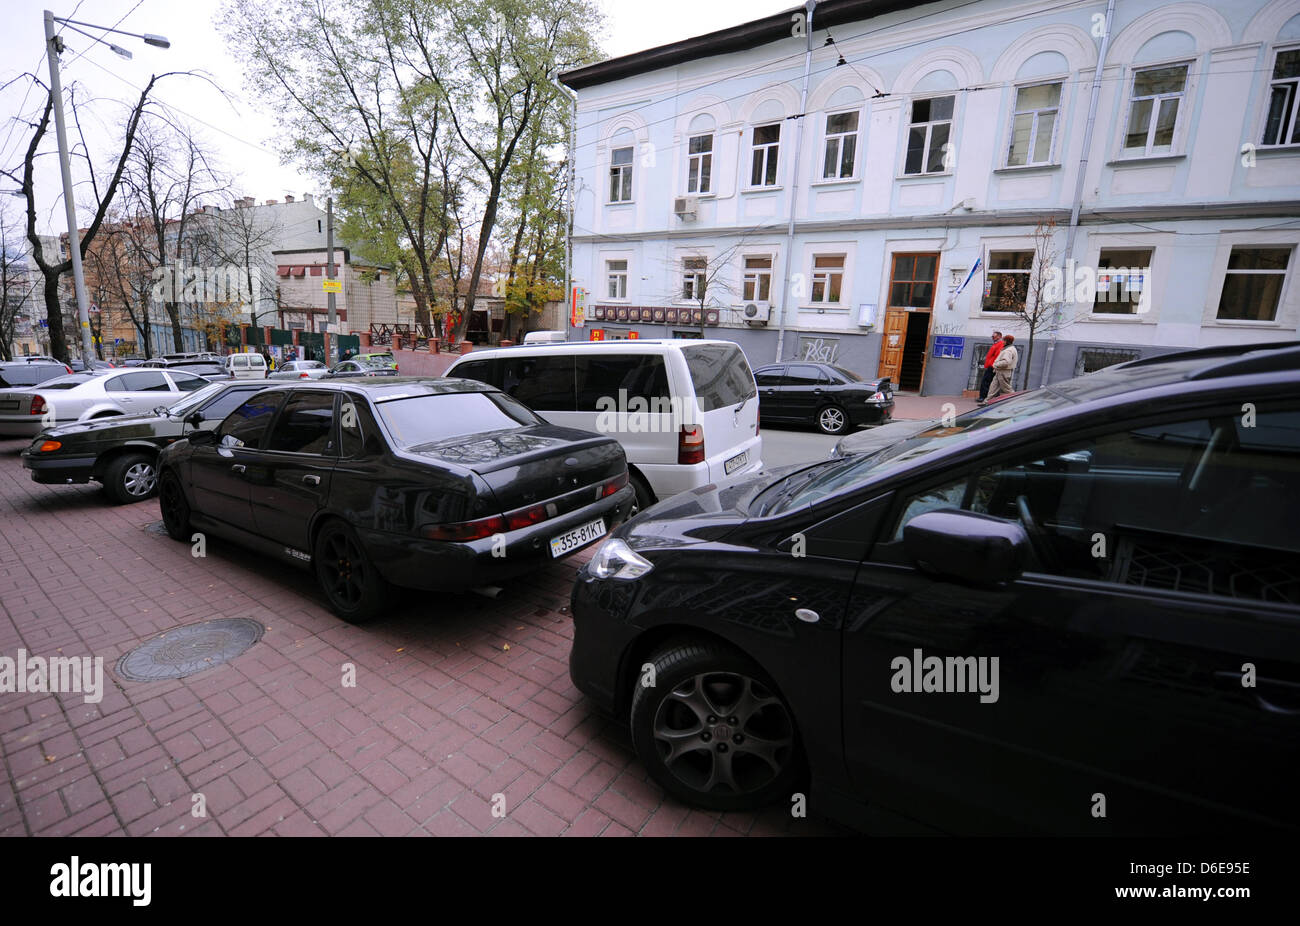 Cars park in two lanes on a street blocking the way for ...